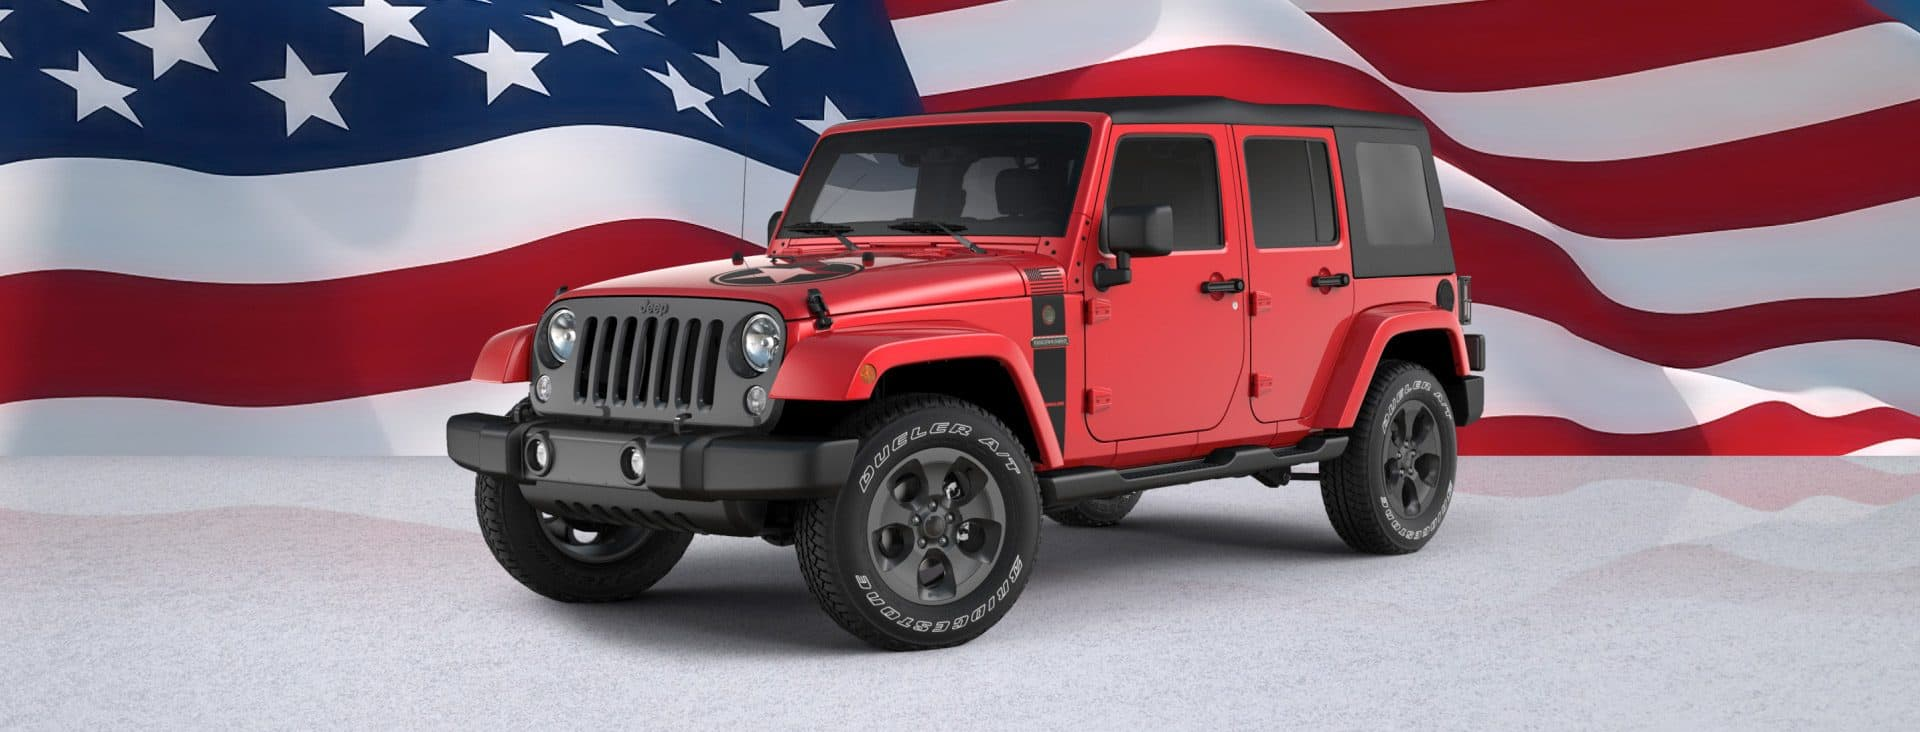 Pennsylvania Gross Receipts Tax  Jeep Wrangler Freedom  Limited Edition Hvac Service Invoice with Invoice Factoring For Small Business Excel  Download Free Receipt Template Word